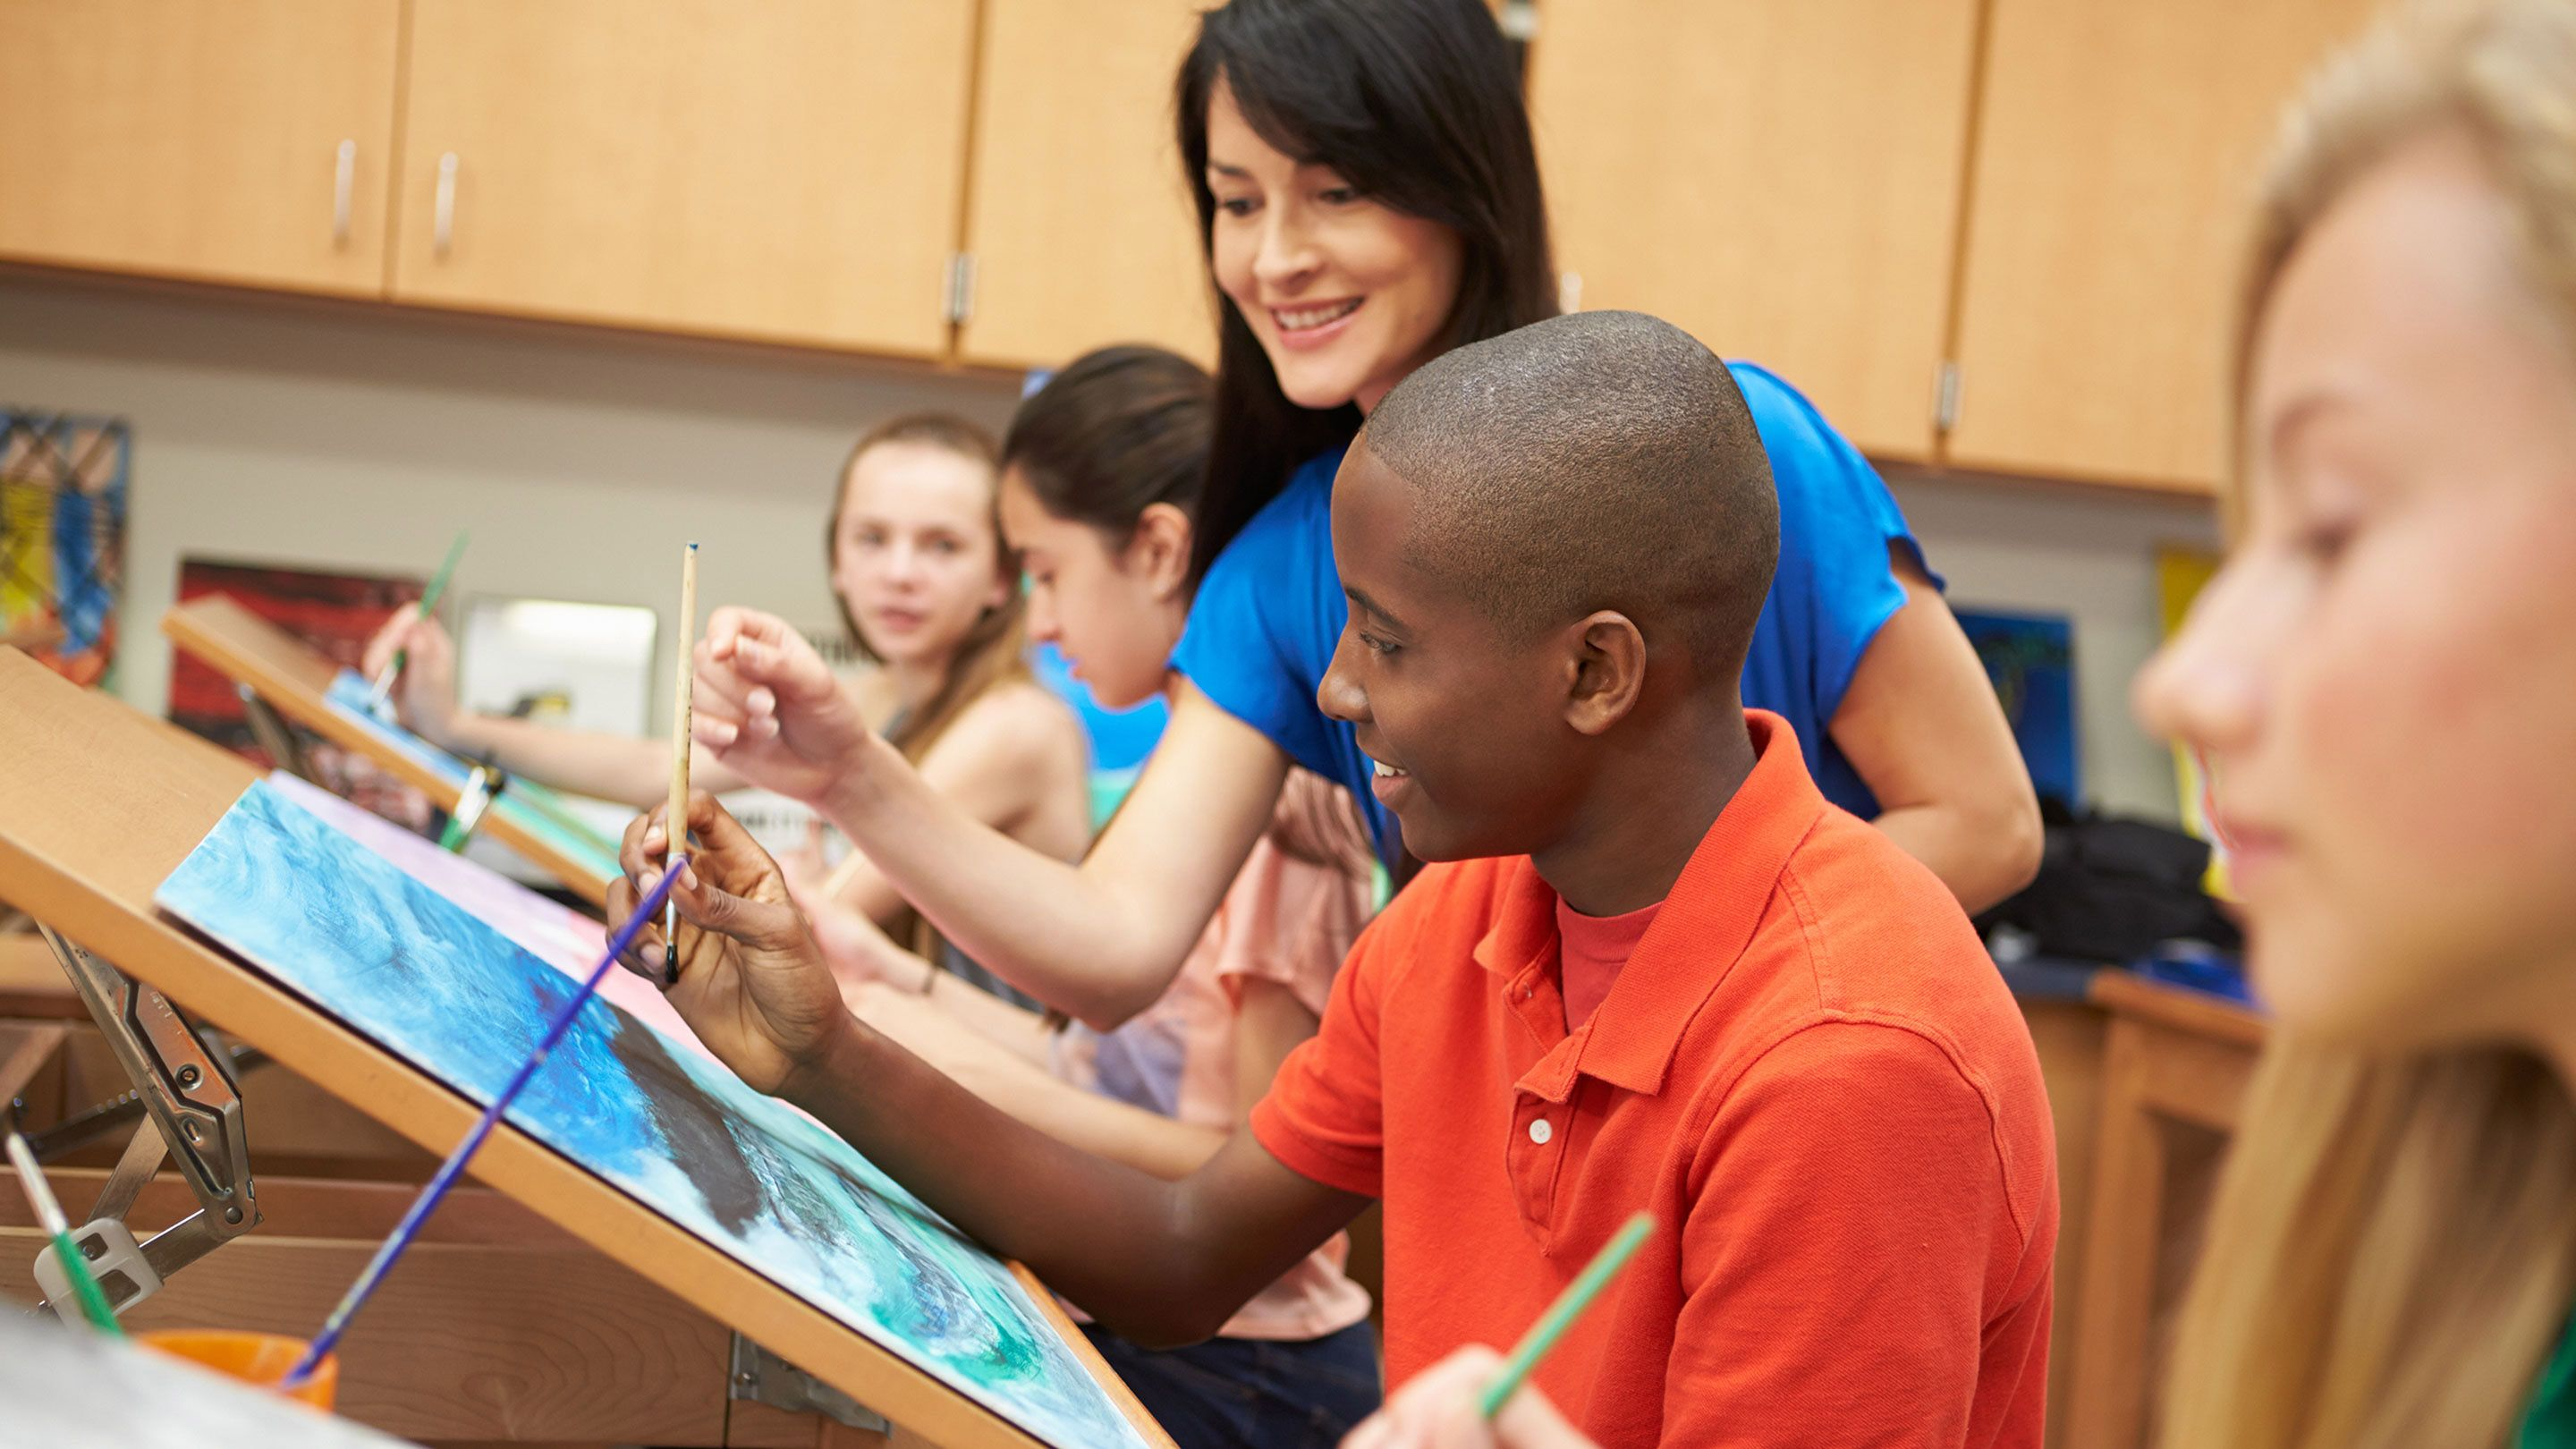 A teacher guides several high school aged students as they sit at easels, painting.